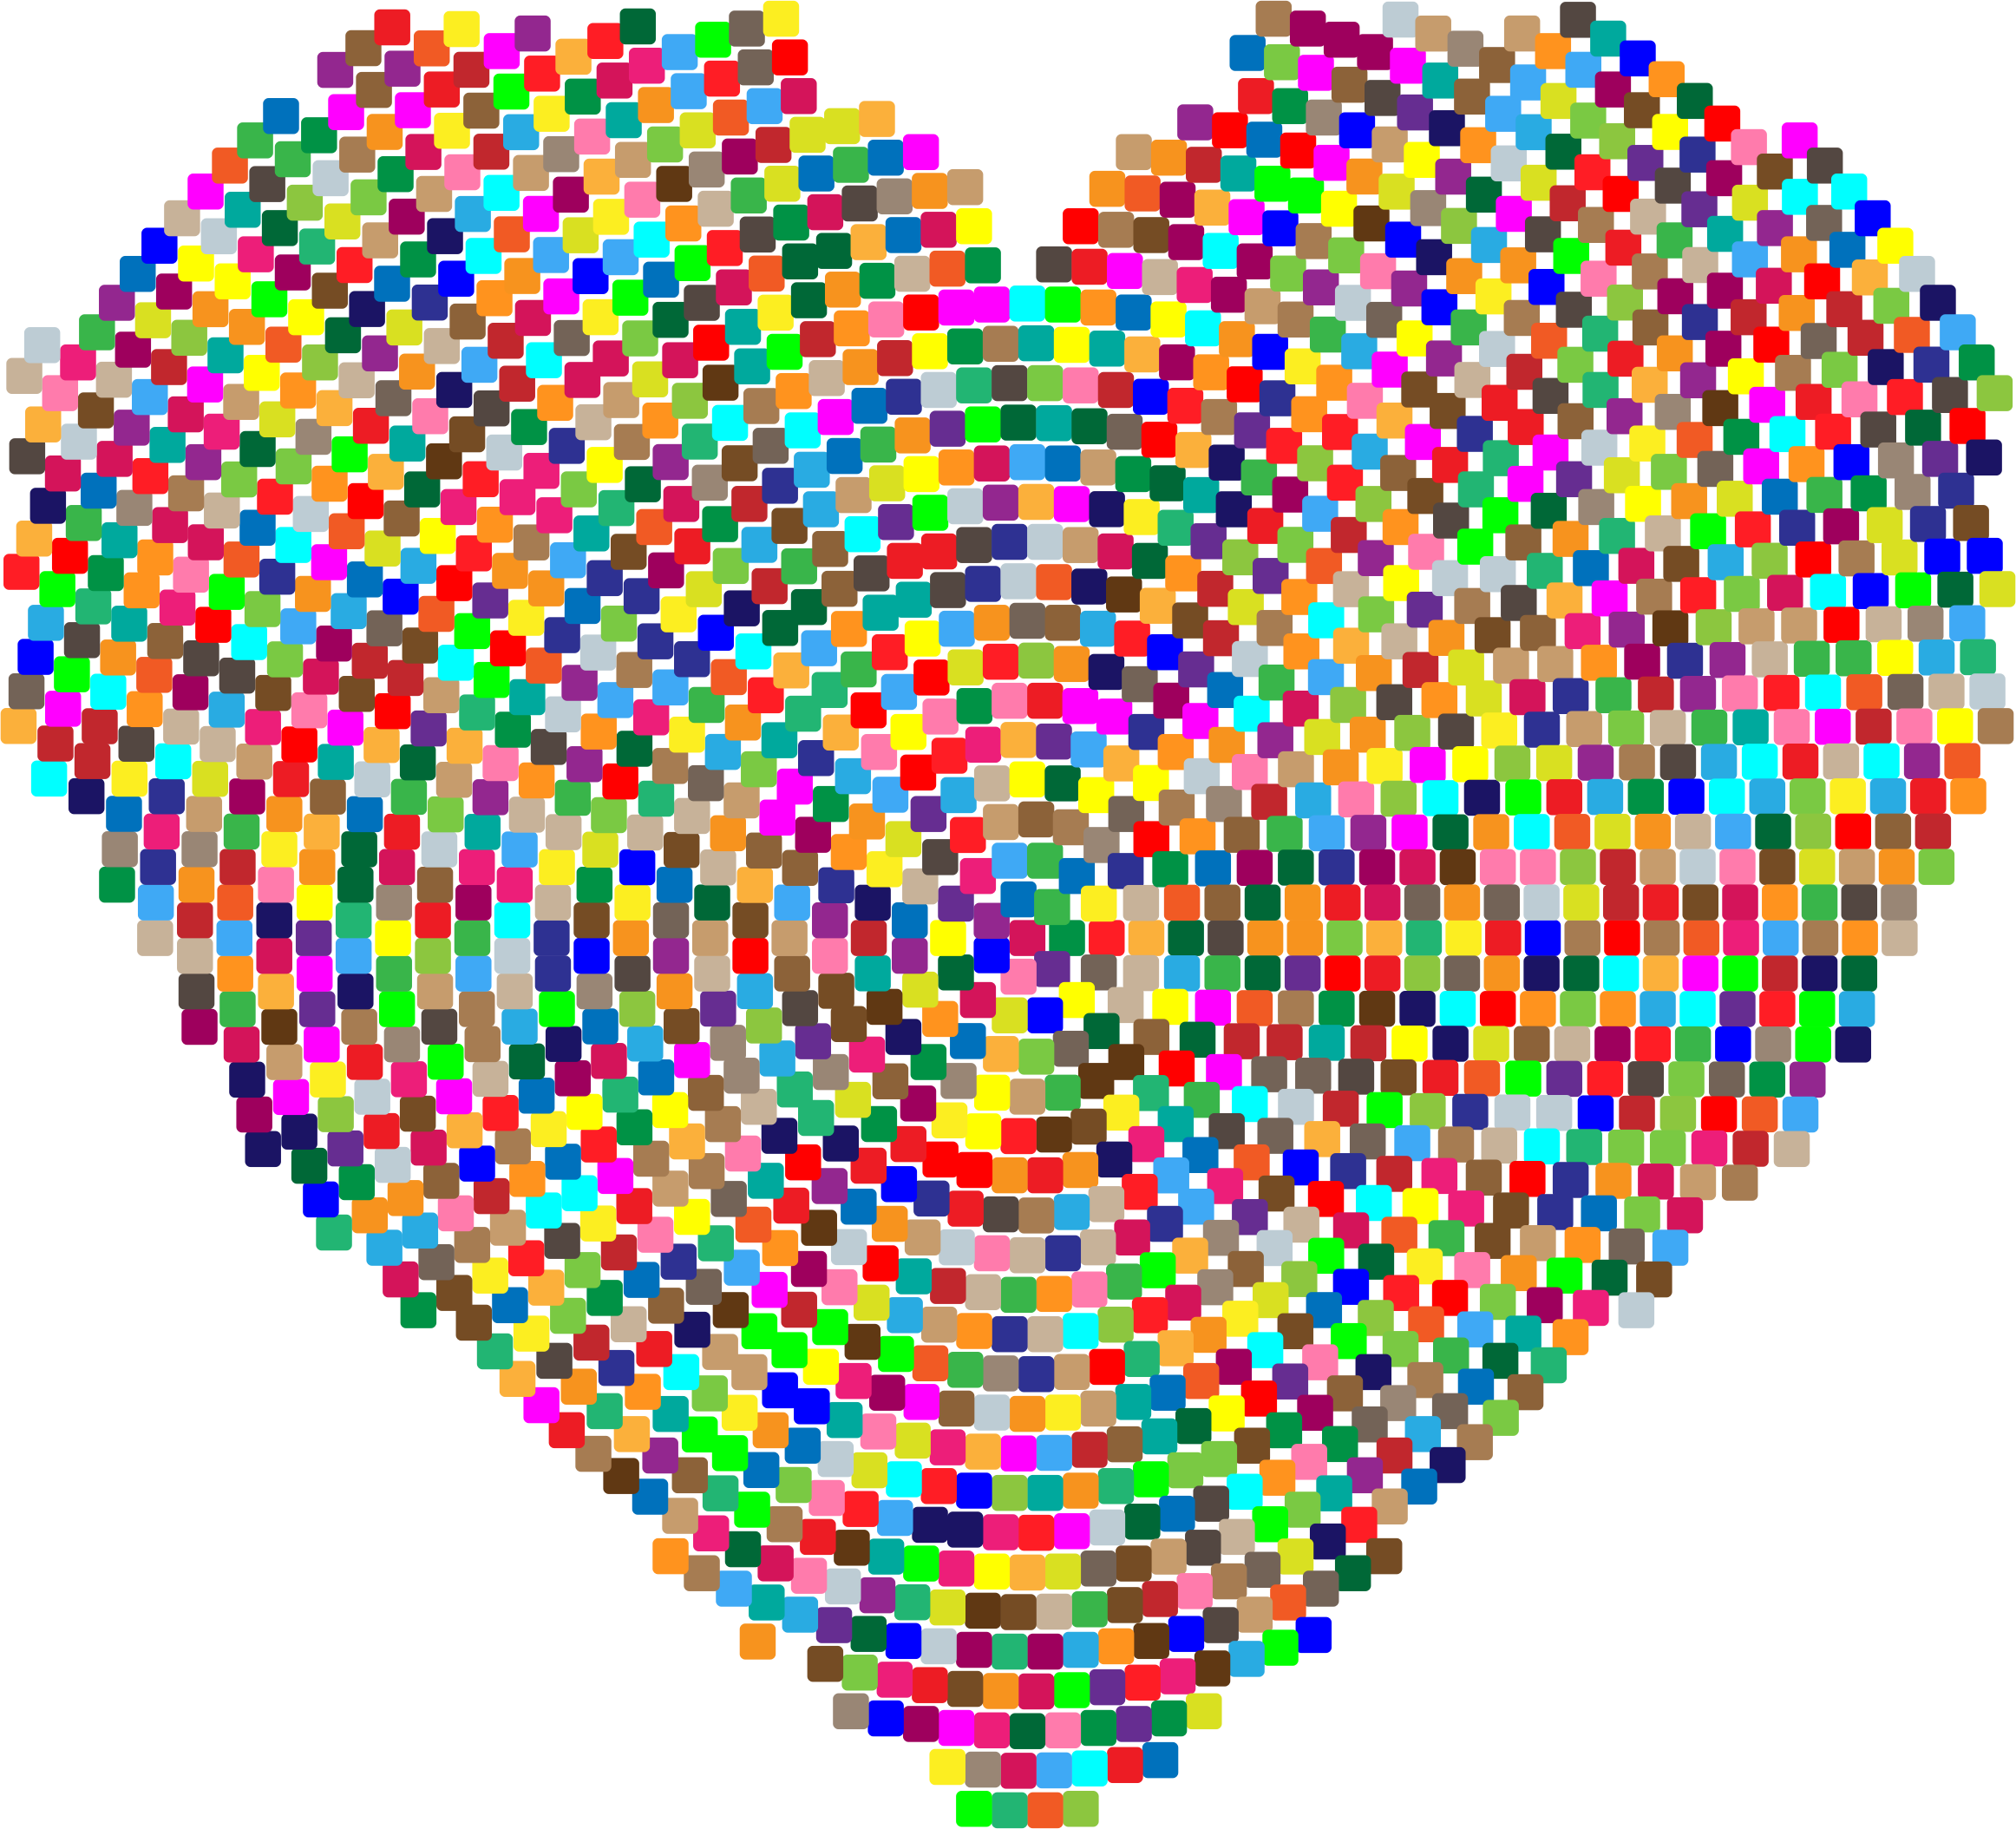 Colorful Mosaic Heart 3 by GDJ